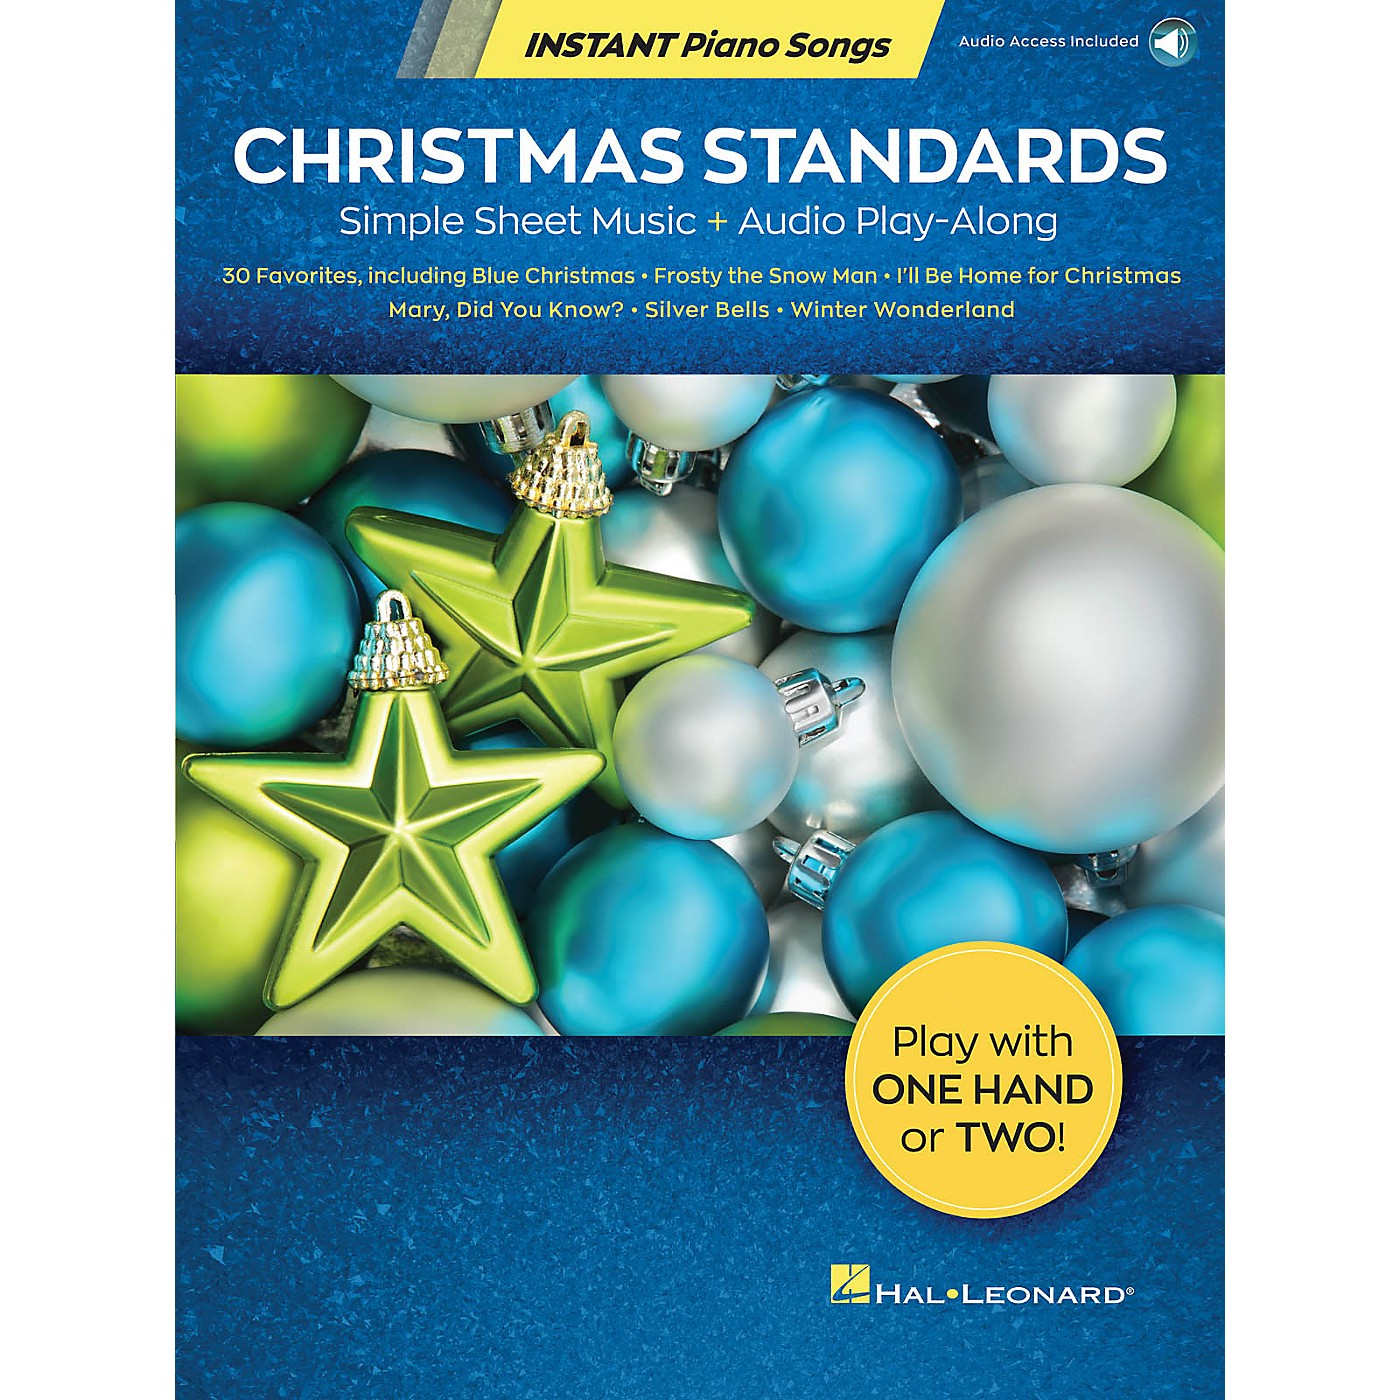 Hal Leonard Christmas Standards - Instant Piano Songs Simple Sheet Music + Audio Play-Along Book/Audio Online thumbnail